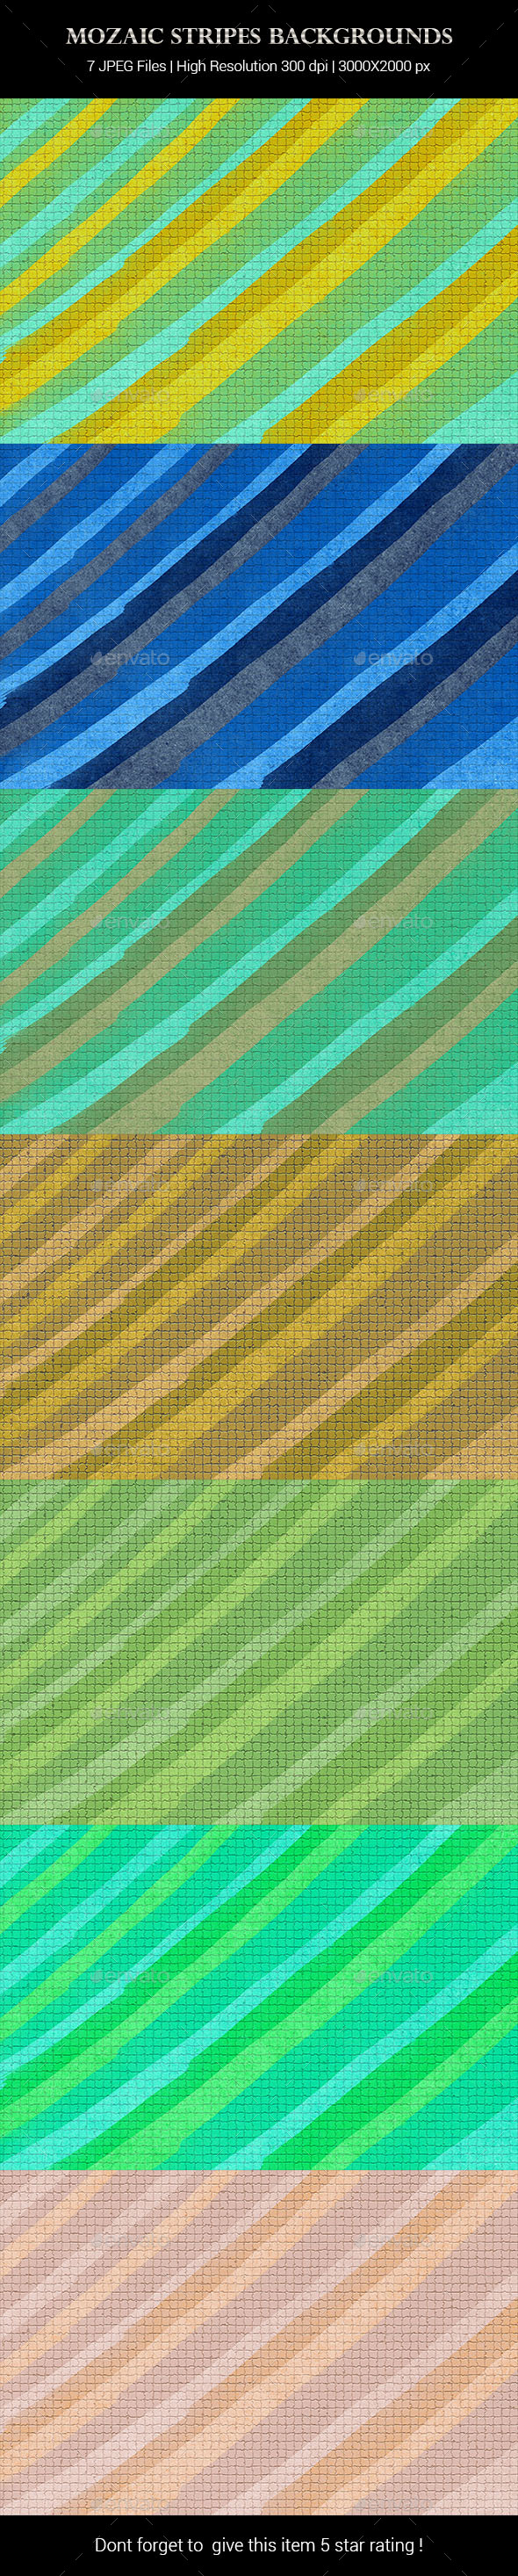 Mozaic Stripes Backgrounds - Backgrounds Graphics